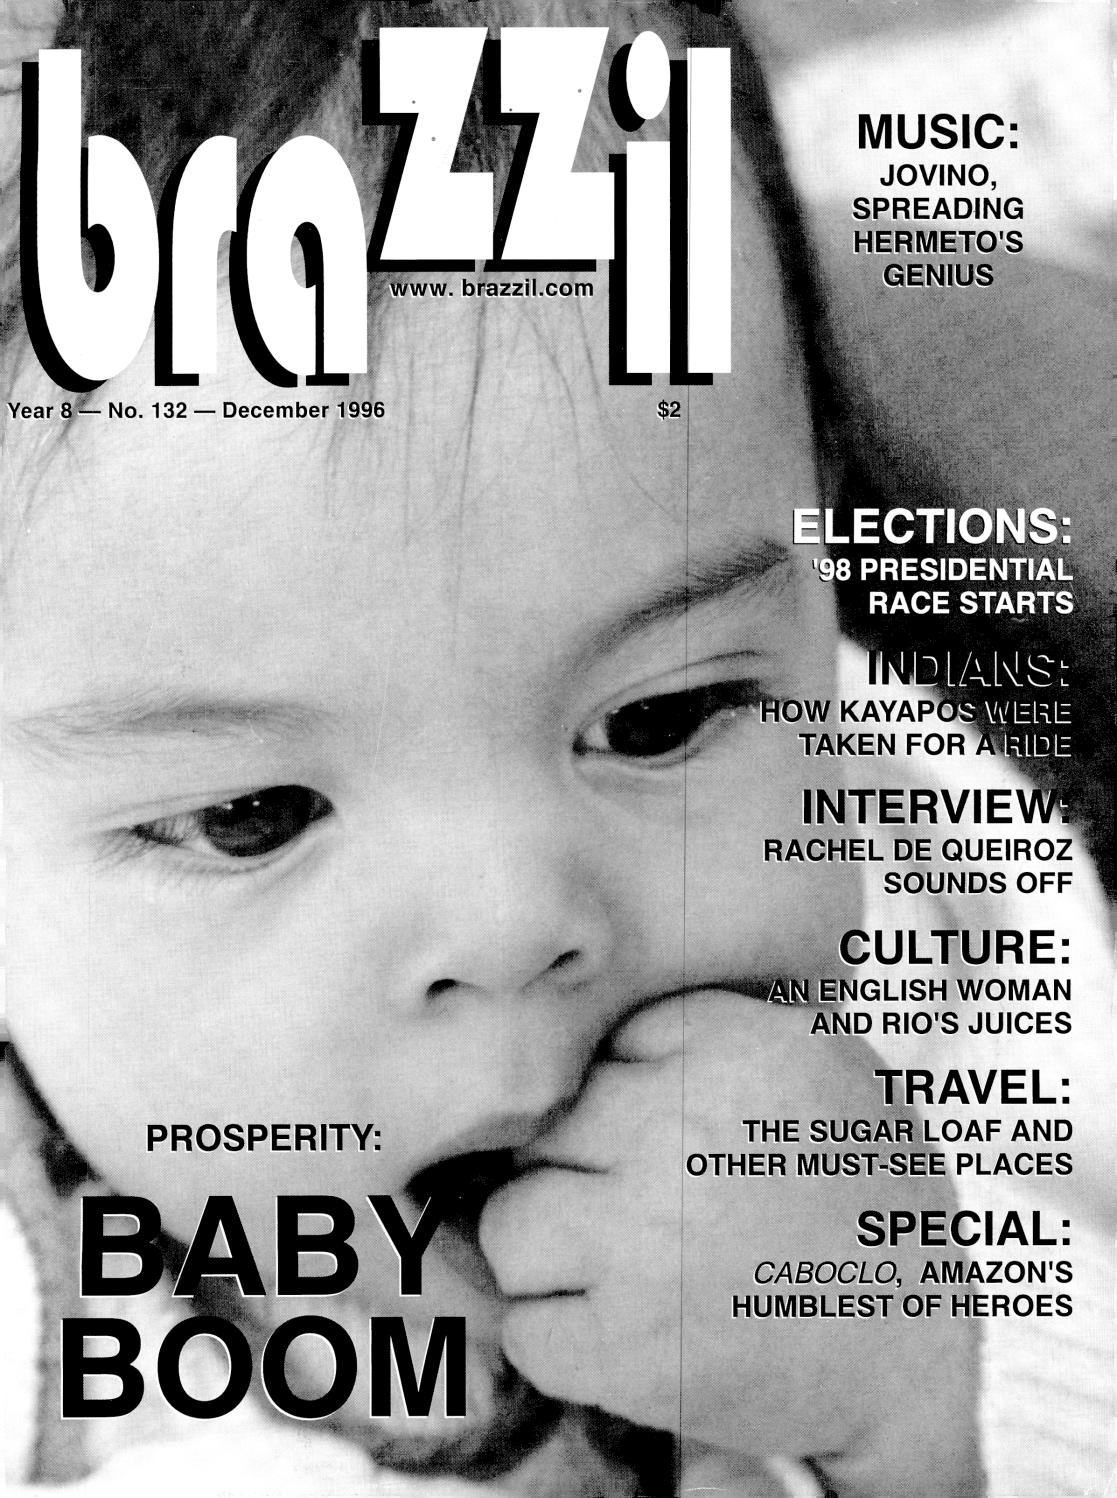 brazzil year 8 number 132 december 1996 by brazzil magazine issuu december 1996 by brazzil magazine